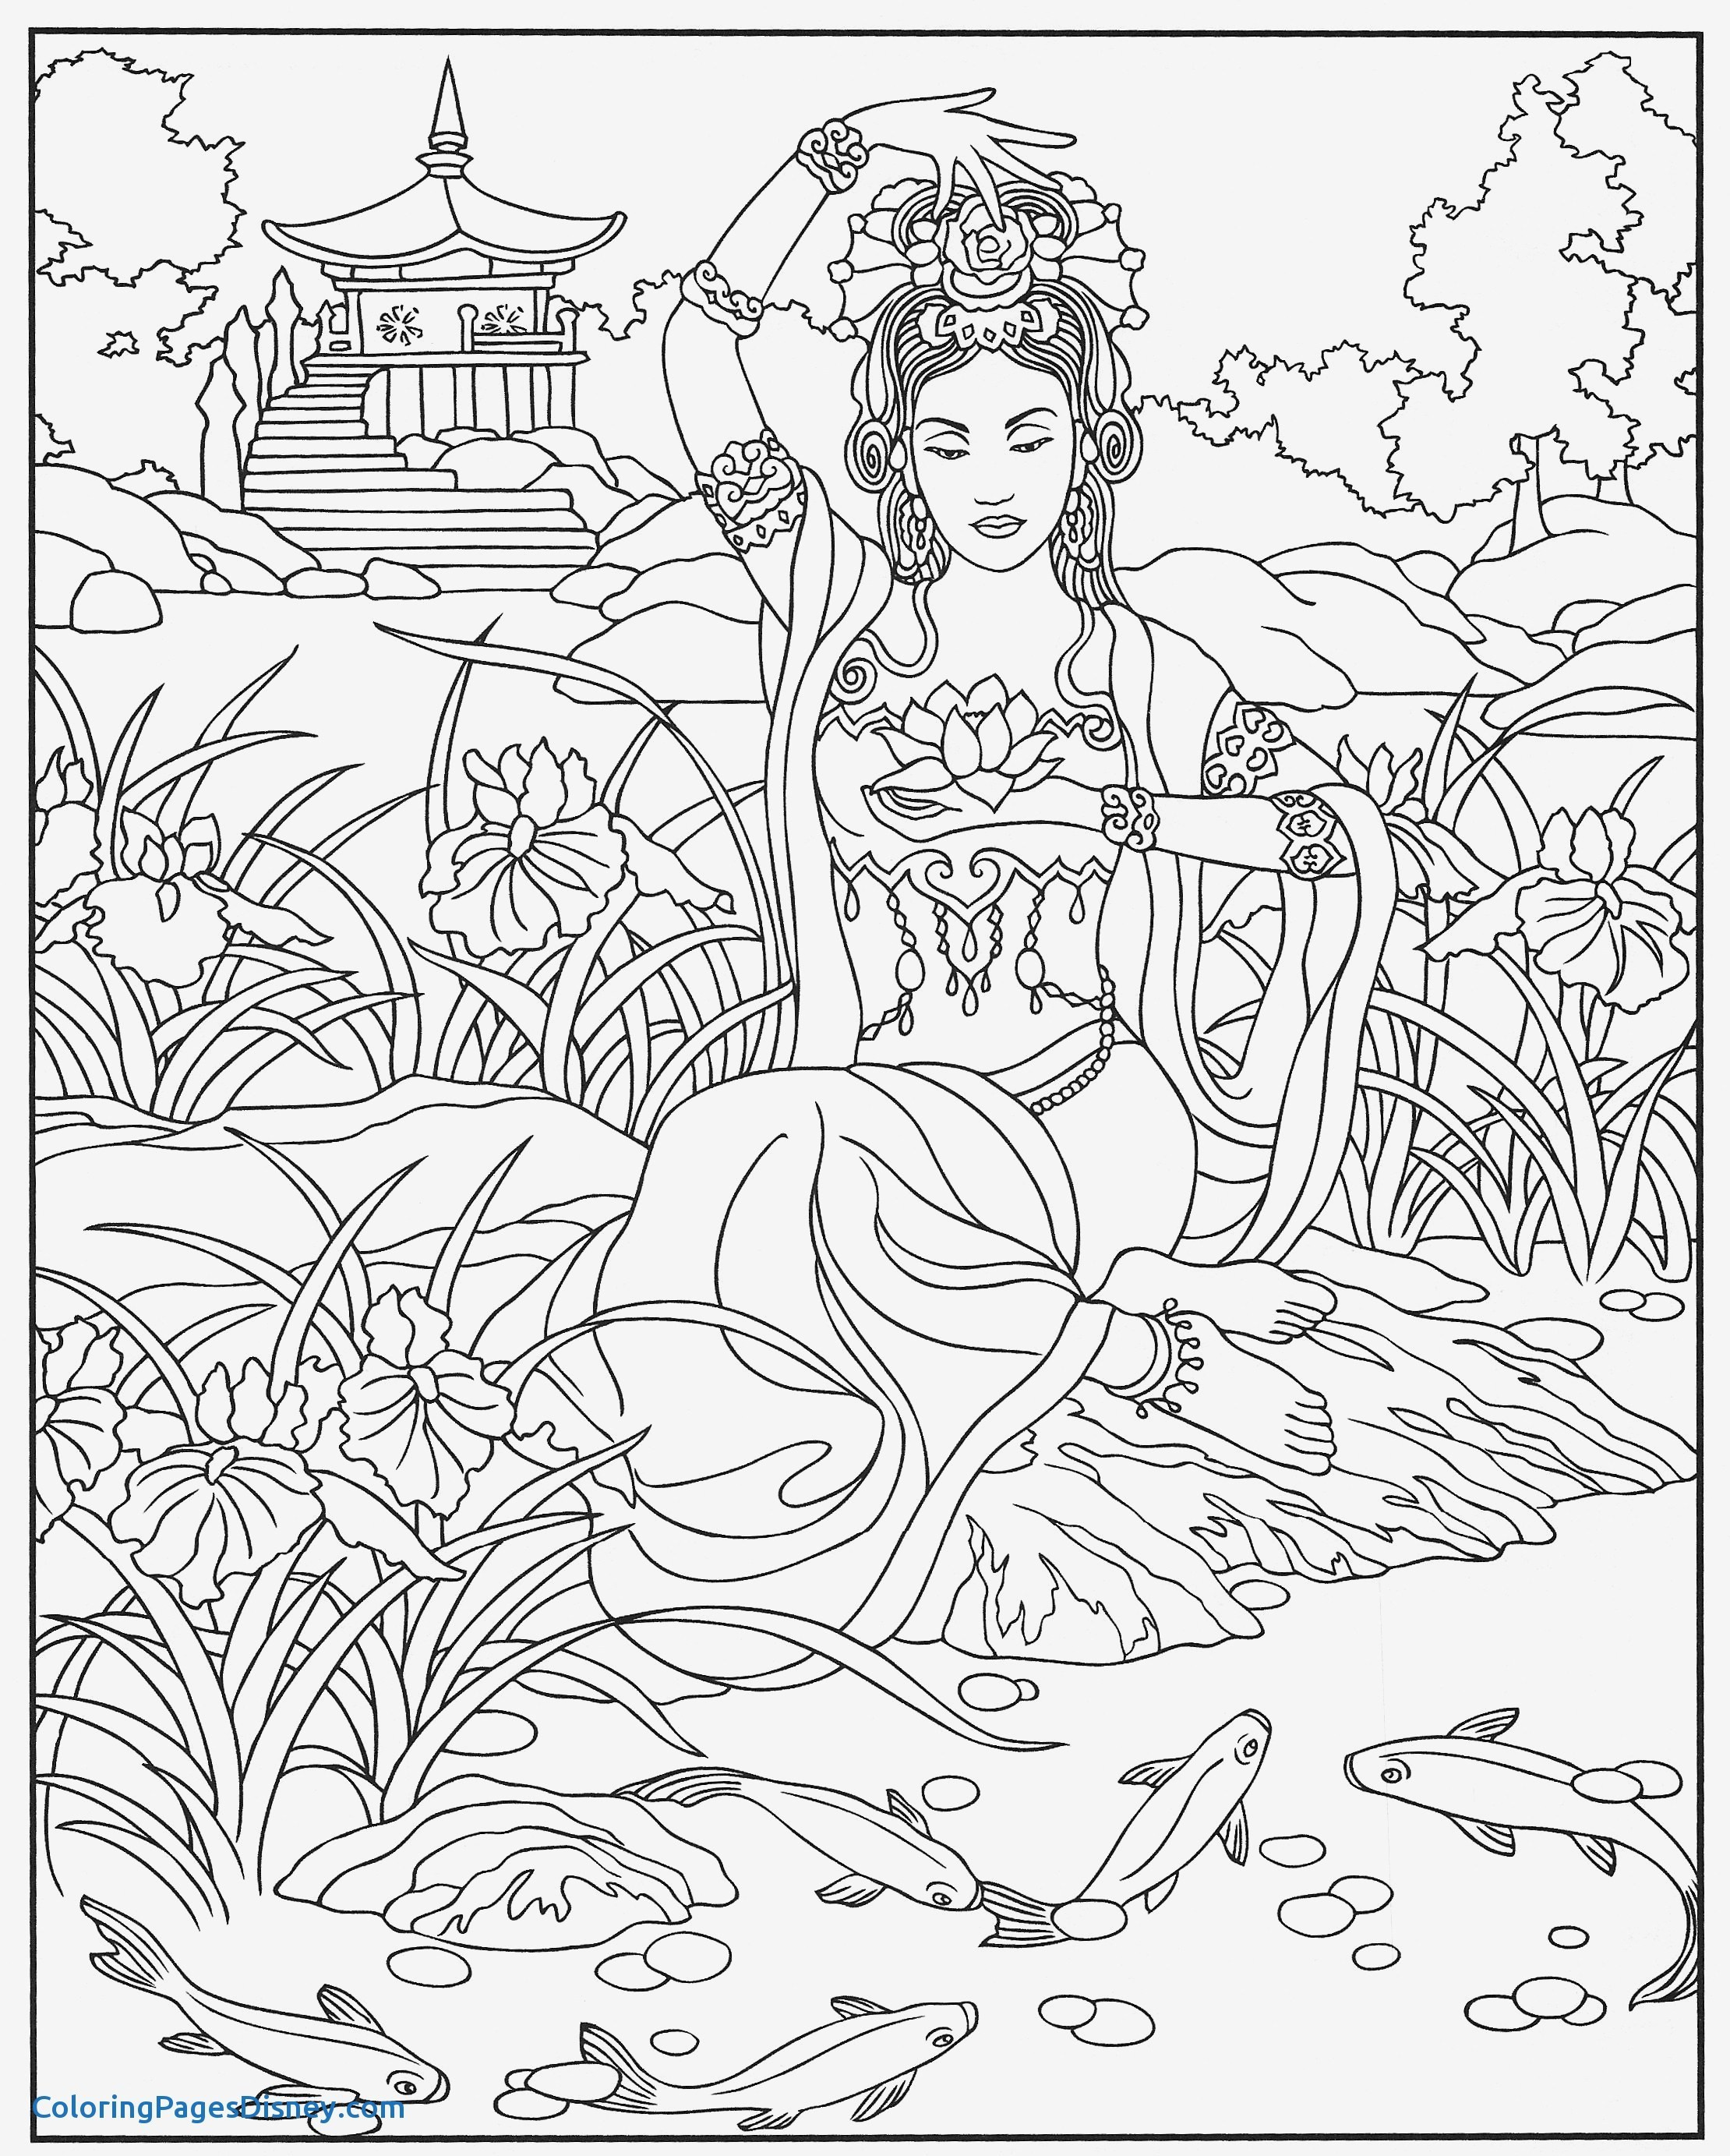 unicorn princess coloring coloring pages princess unicorn bubakidscom princess unicorn coloring